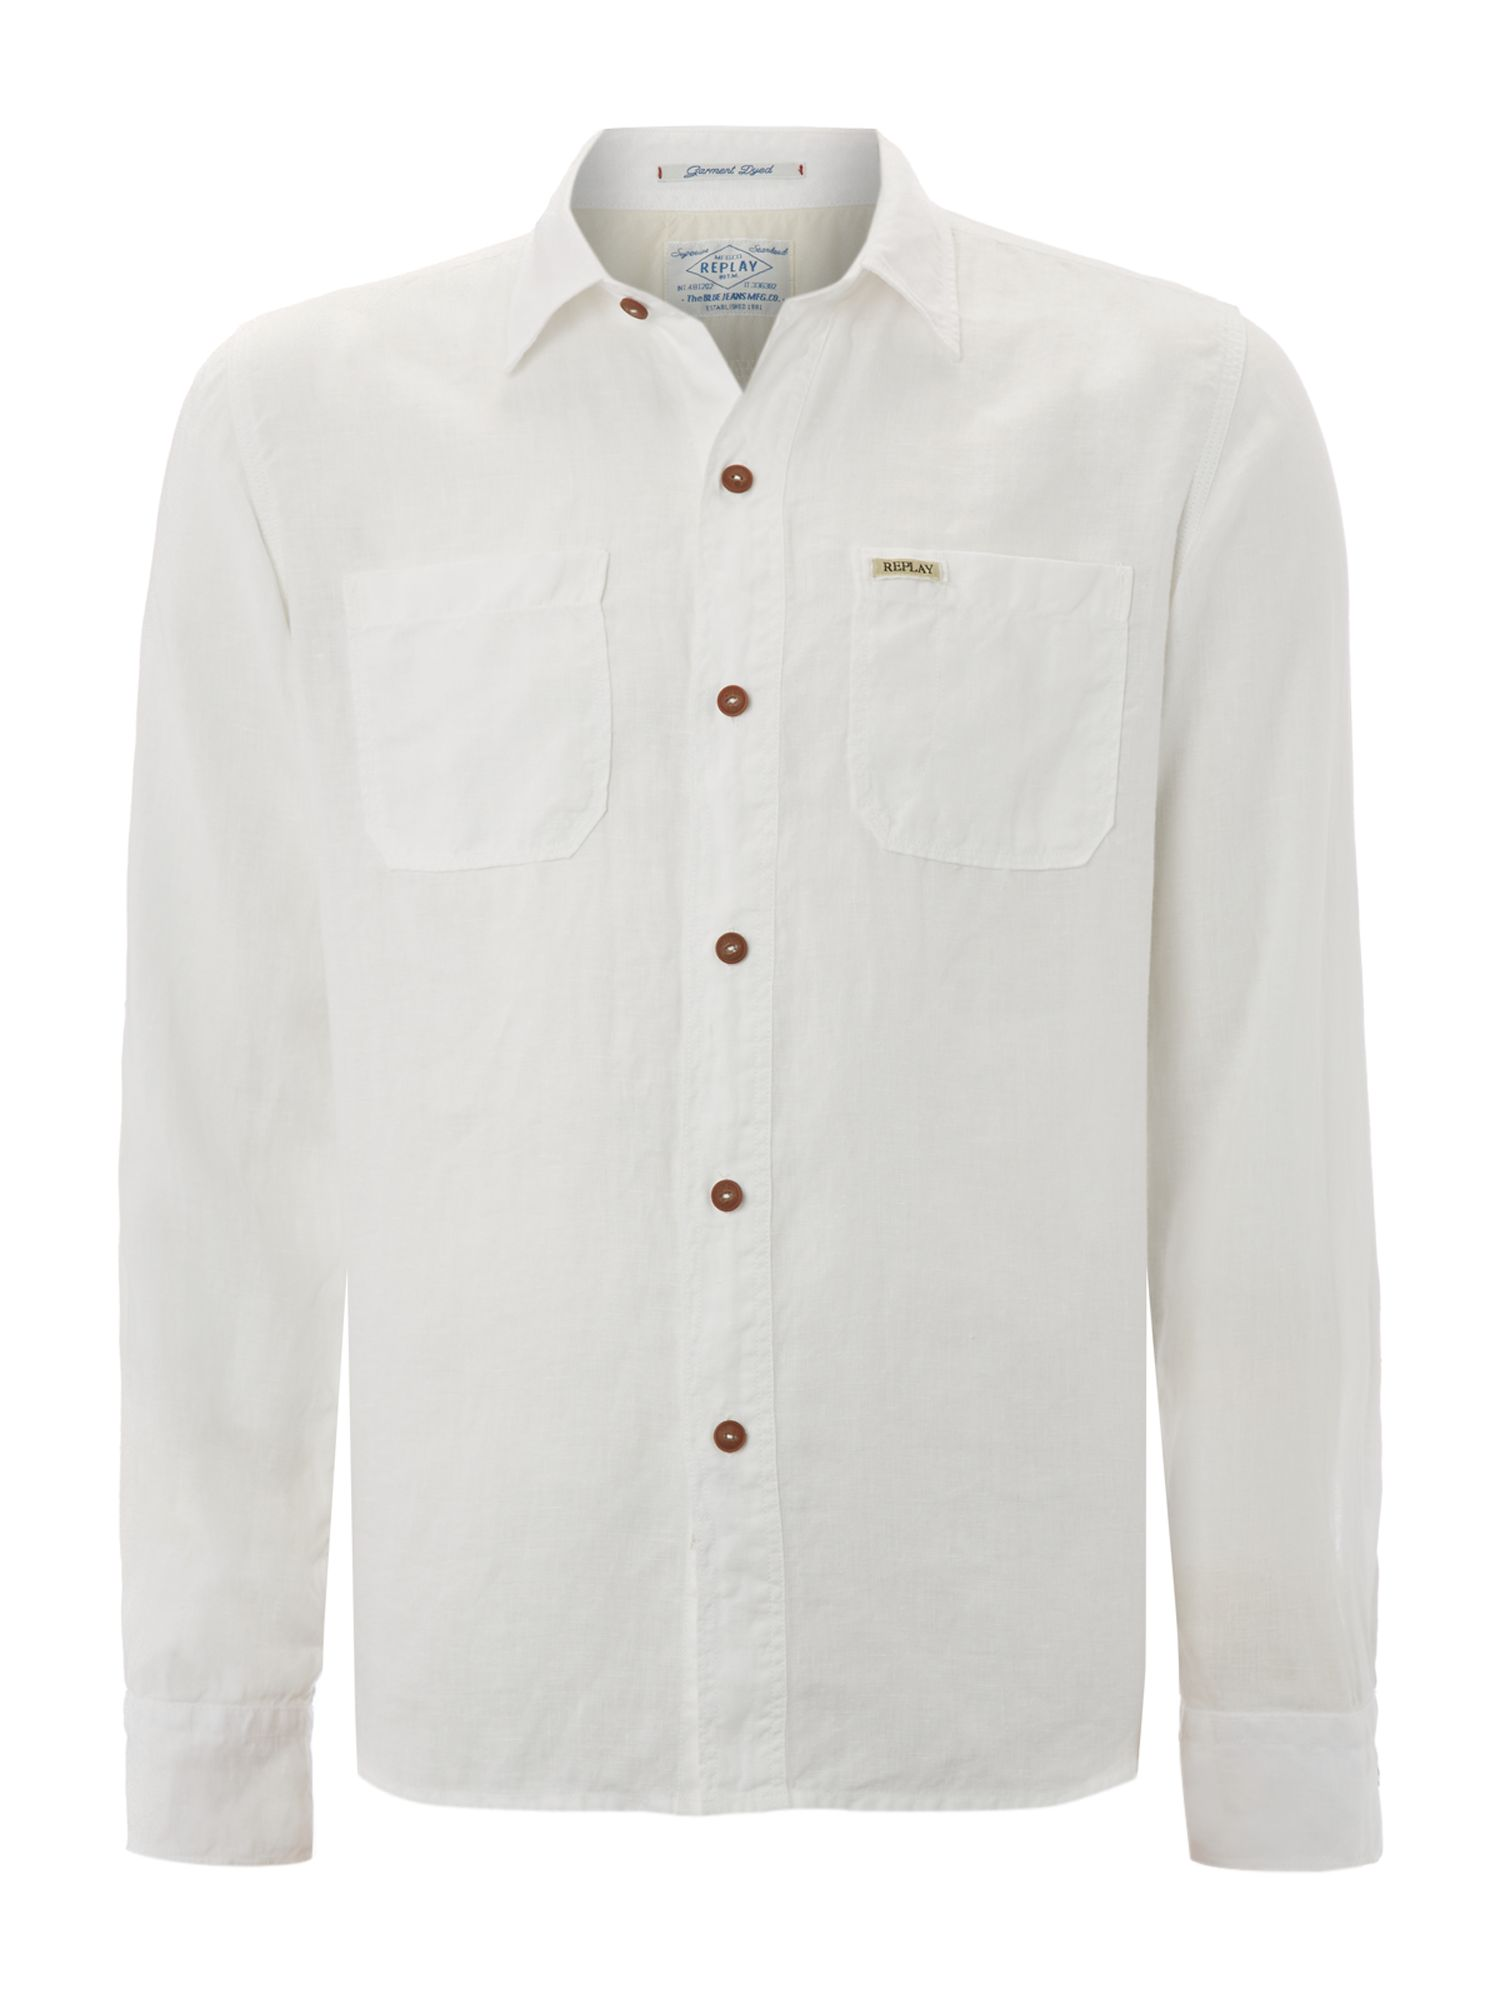 Long sleeved double pocket linen work shirt